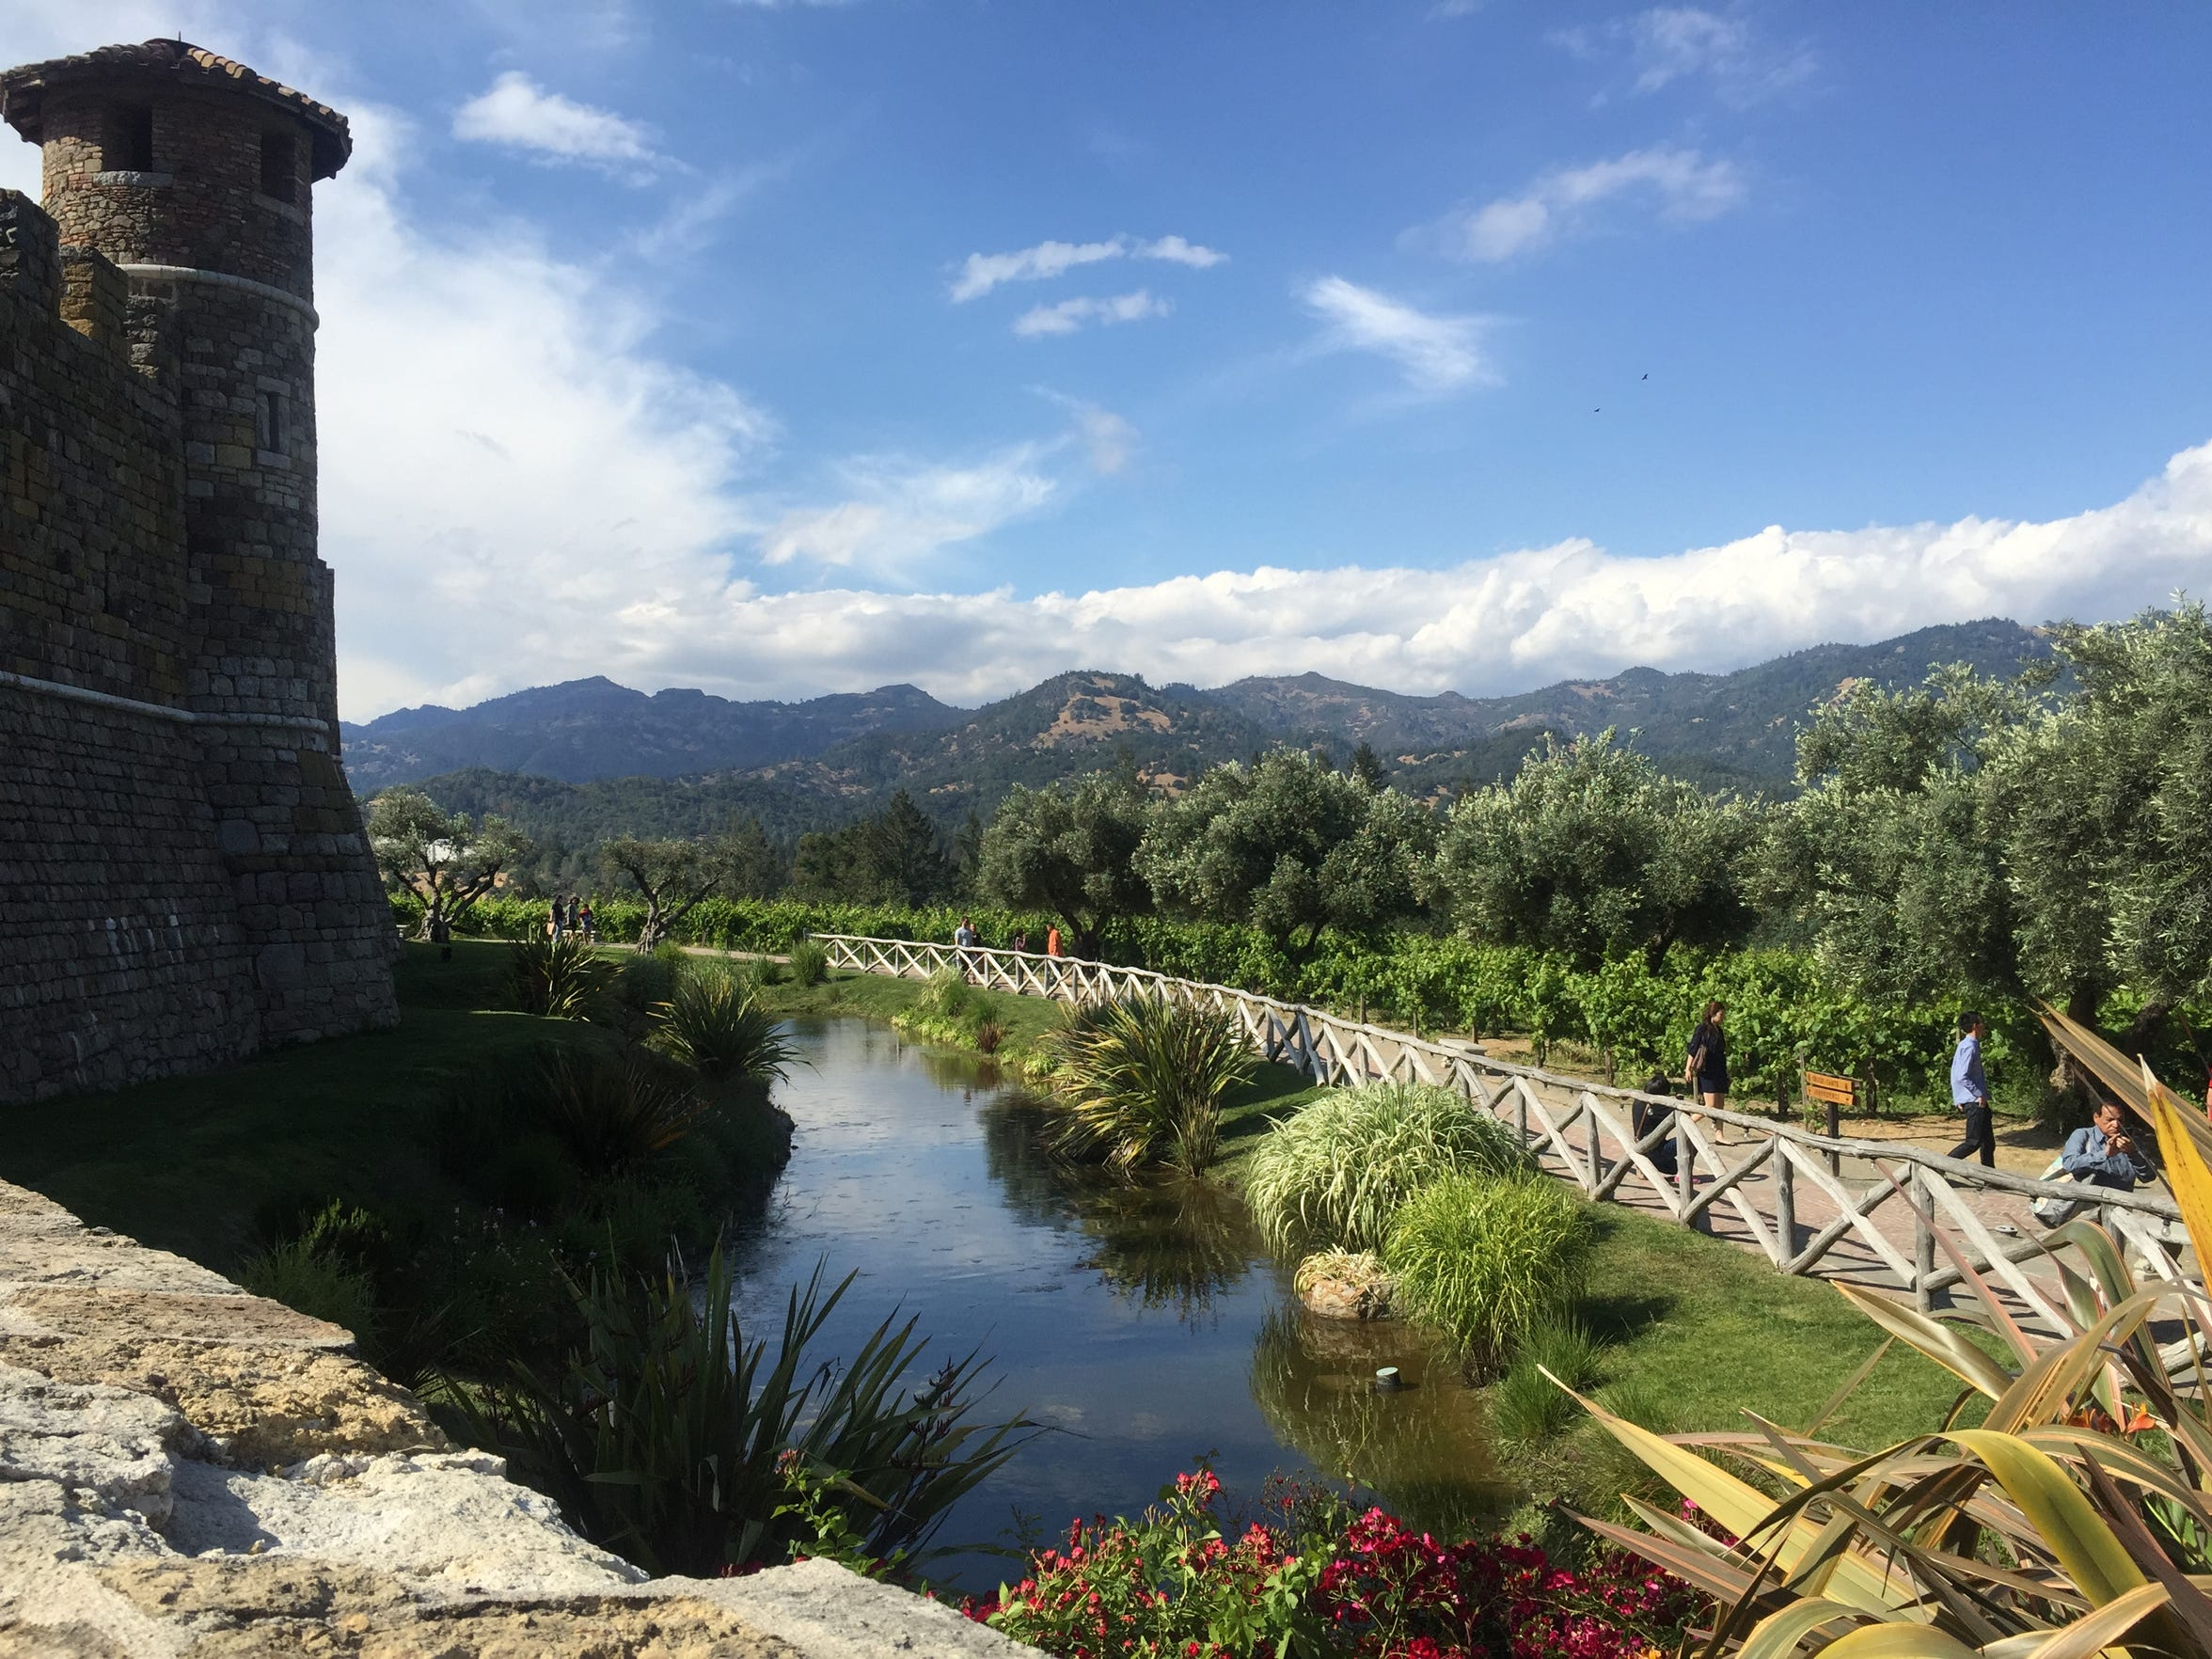 Slip back into 13th century Tuscany at Castello di Amorosa, which offers tastings in its cellar and tours of the 170-acre property that boasts a scenic stream and lake